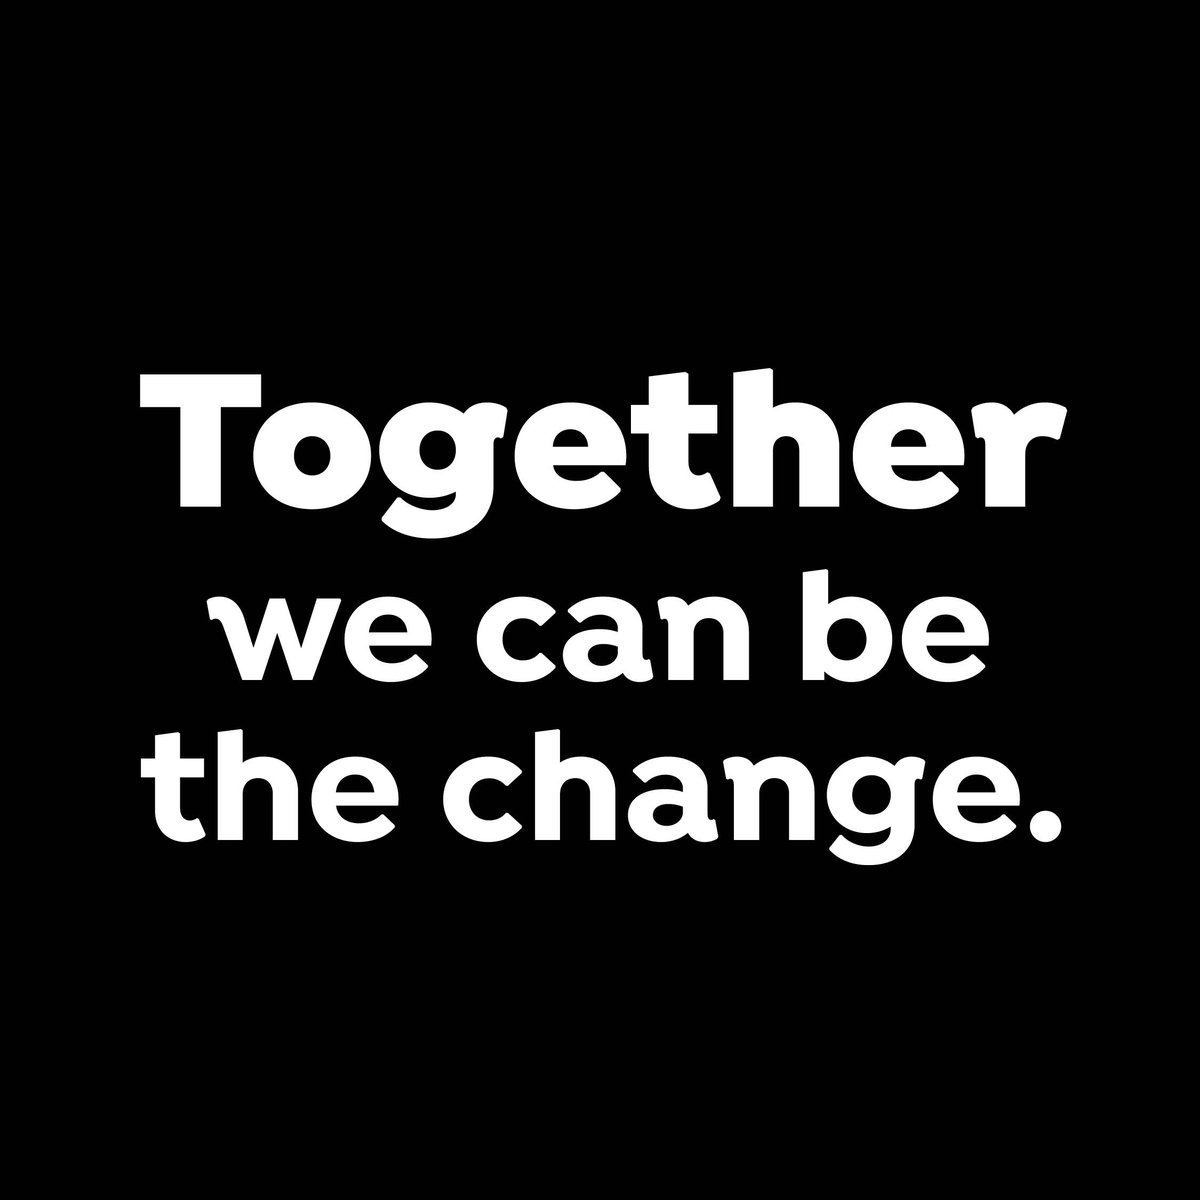 The future belongs to kids, they are watching & listening. Let them hear us speak up when we see injustice. Let them see us stand up against racism & hate. Let's help our kids see that we can make the world more just. Together we must create a better, brighter future for all. https://t.co/sSh15U1taB